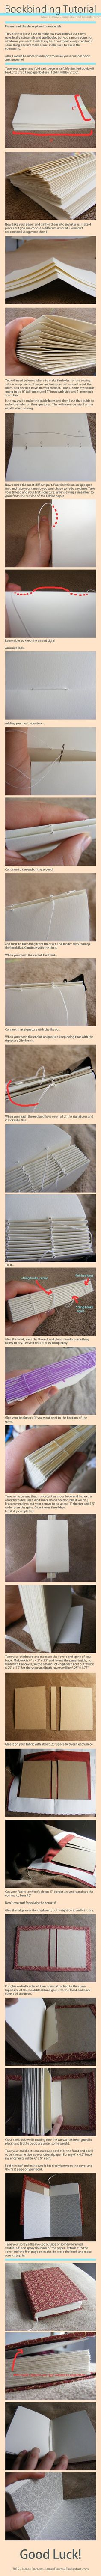 How to make a book with great instructions!